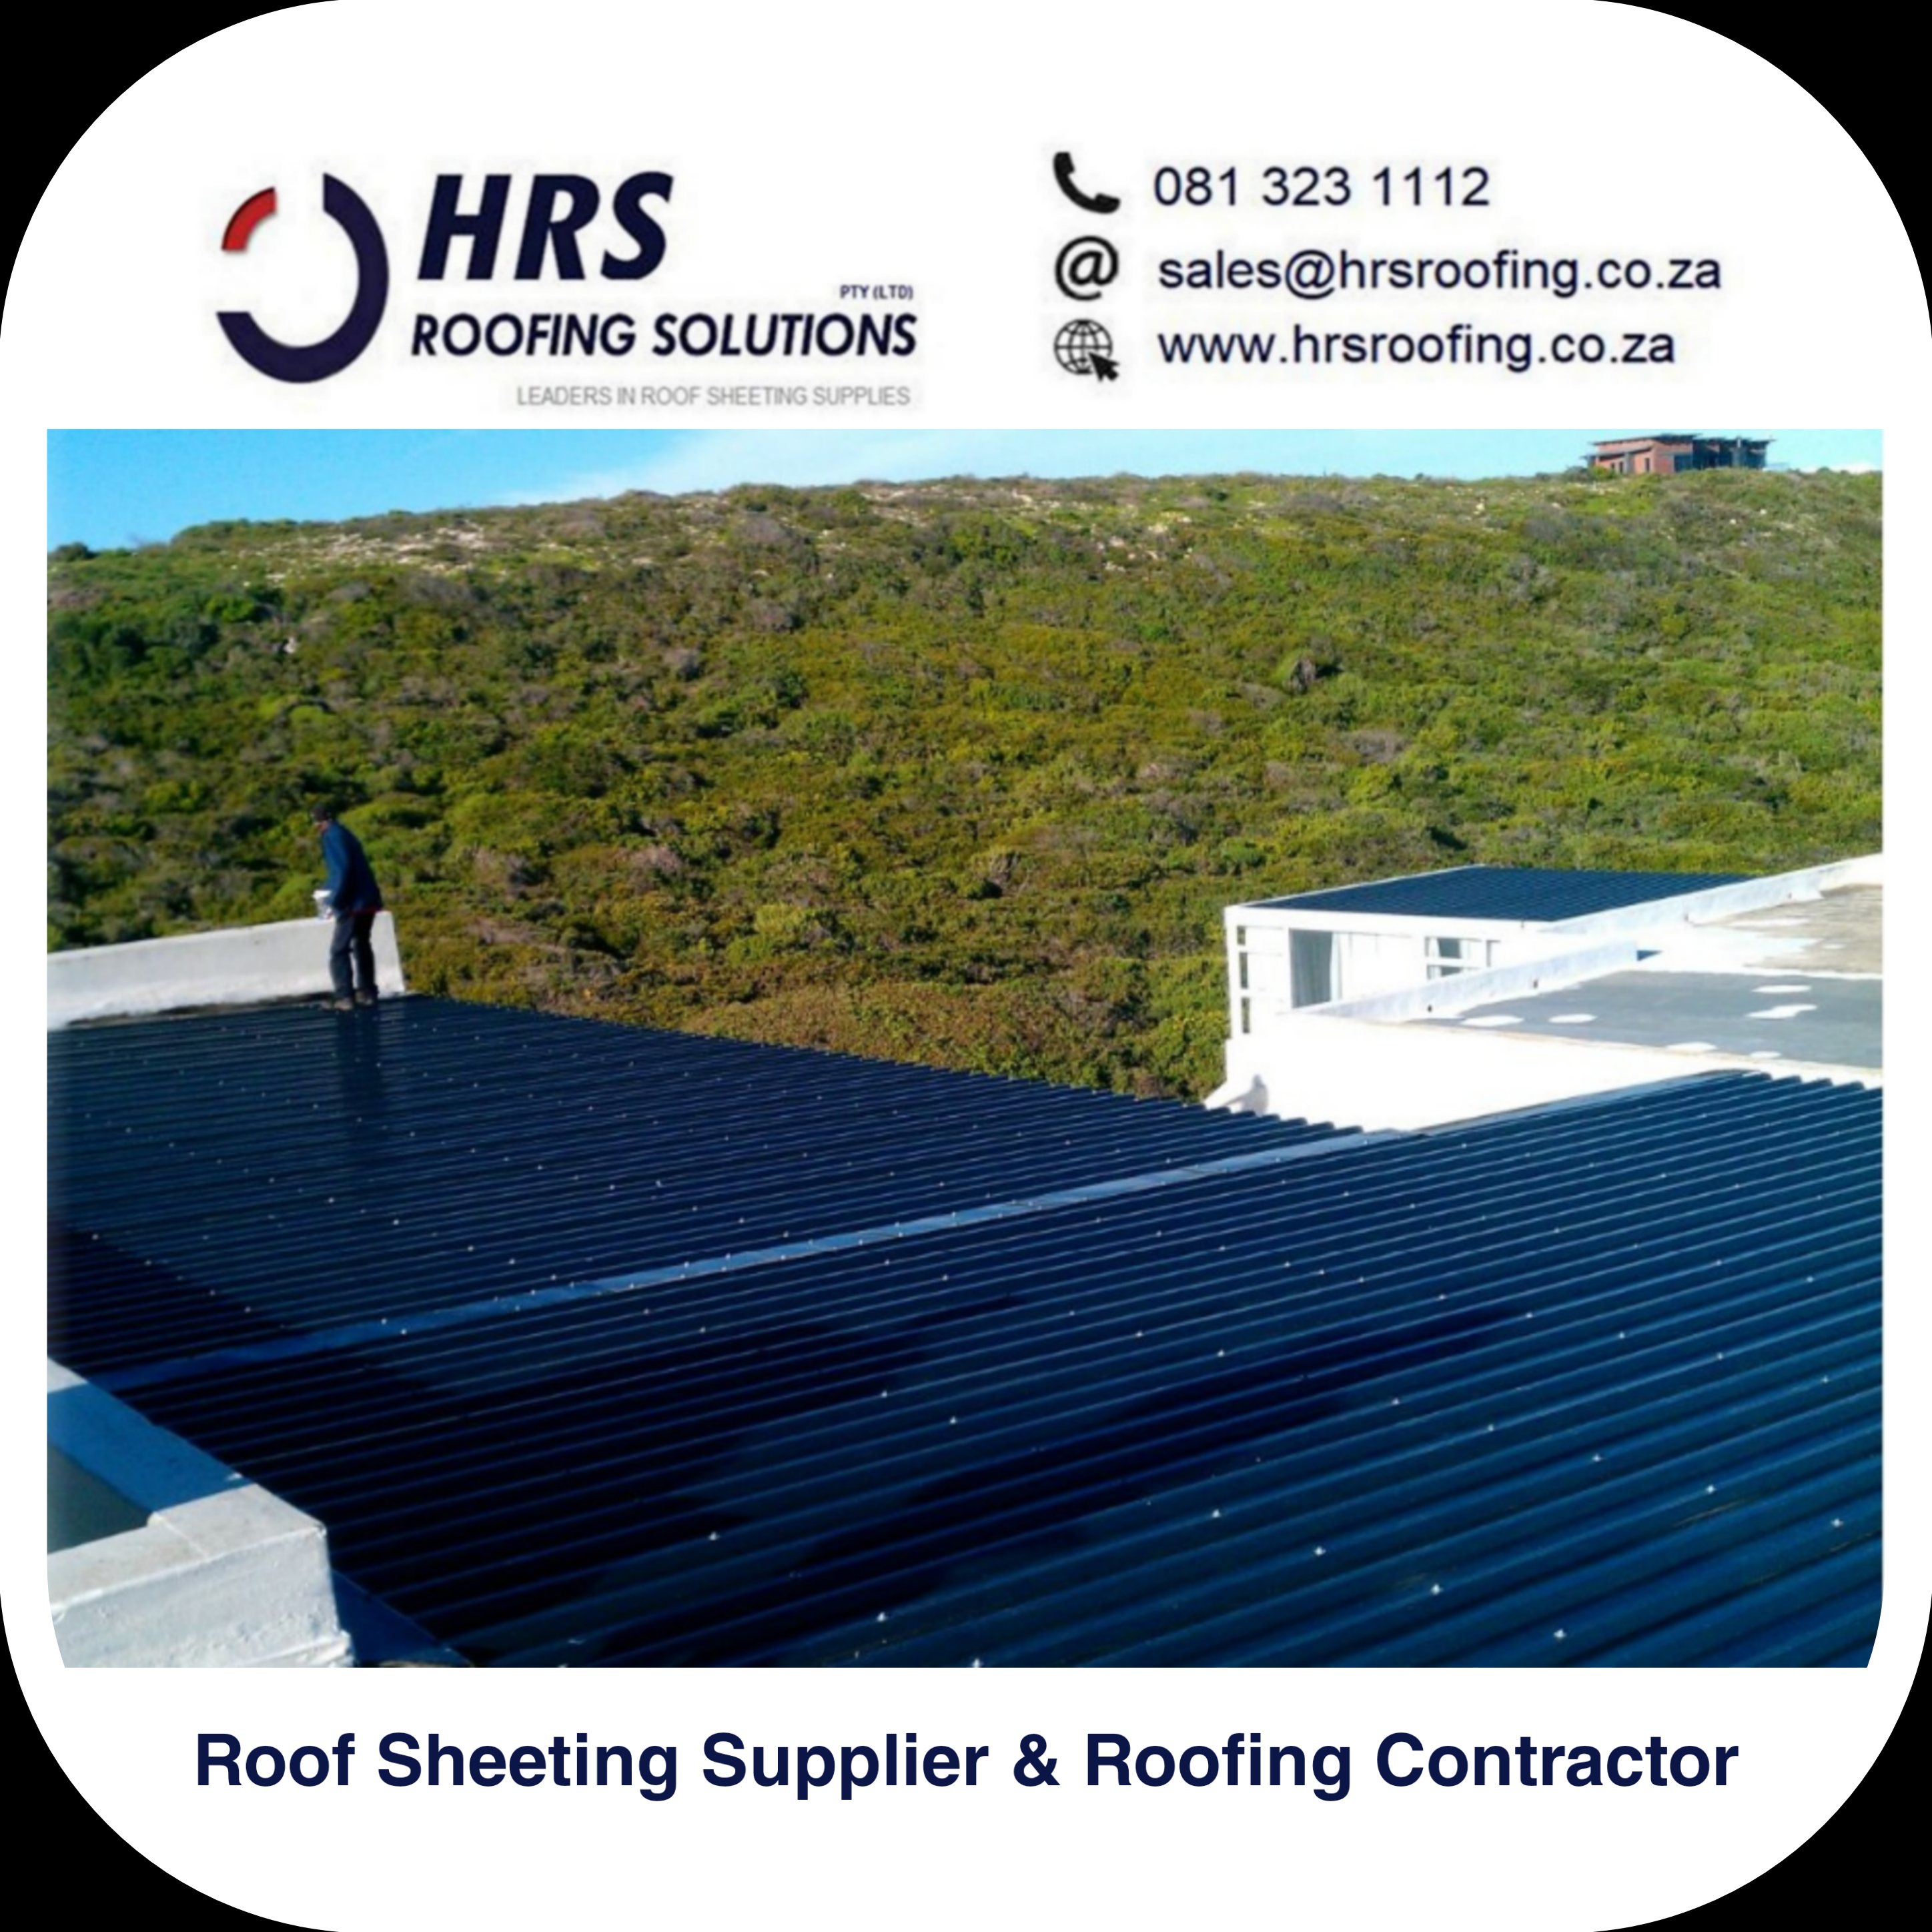 bullnose and cranked roof sheeting cape Town Zincalume Colorbond hrs roofing1 - Roofing Gallery